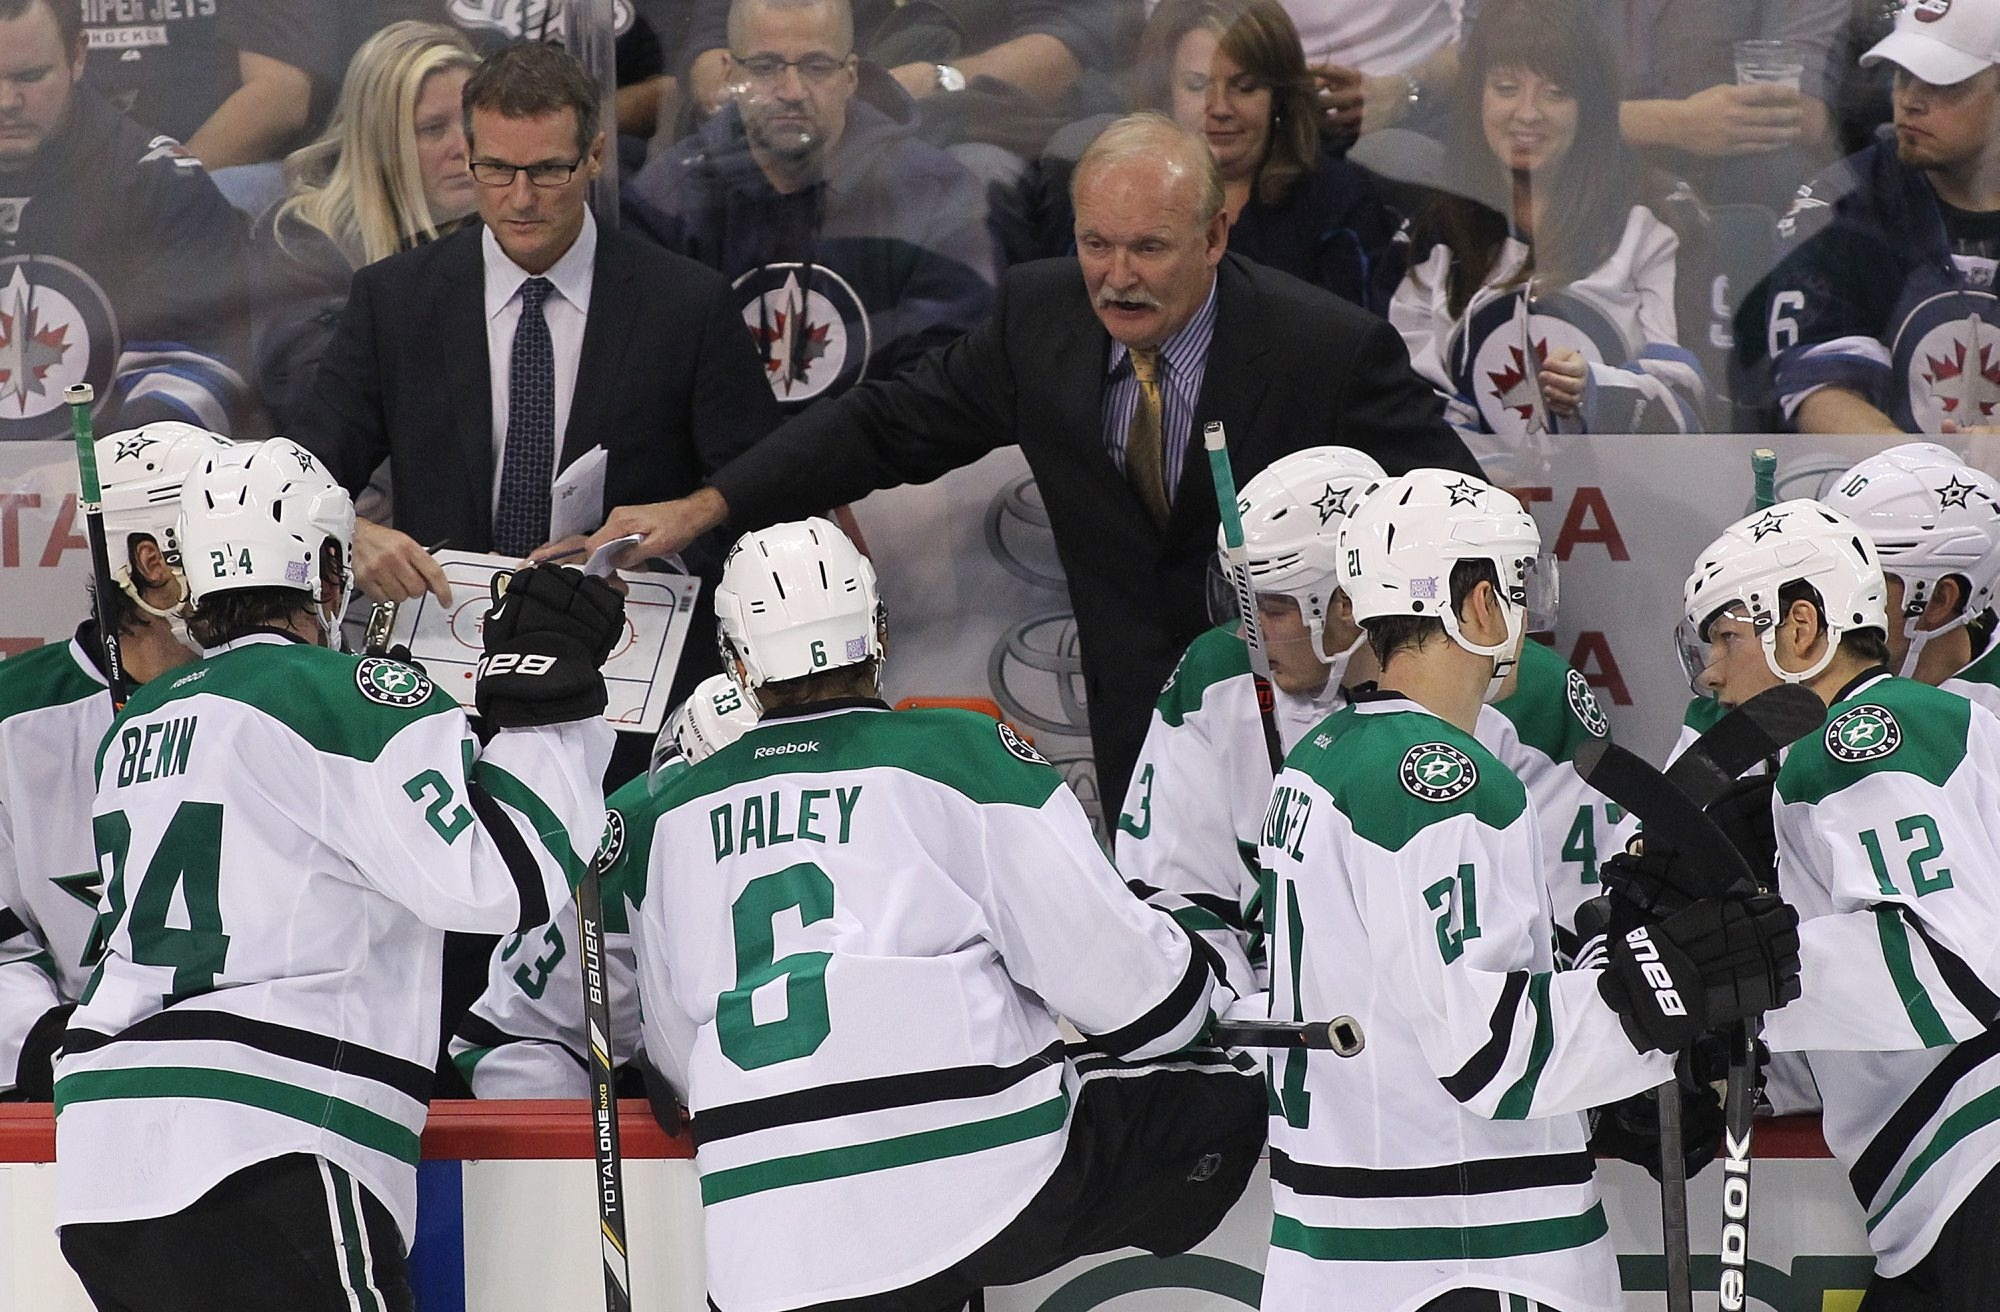 Former Sabres coach Lindy Ruff, now coach of the Dallas Stars, will make his first public appearance at First Niagara Center since his farewell news conference in February, two days after he was fired.